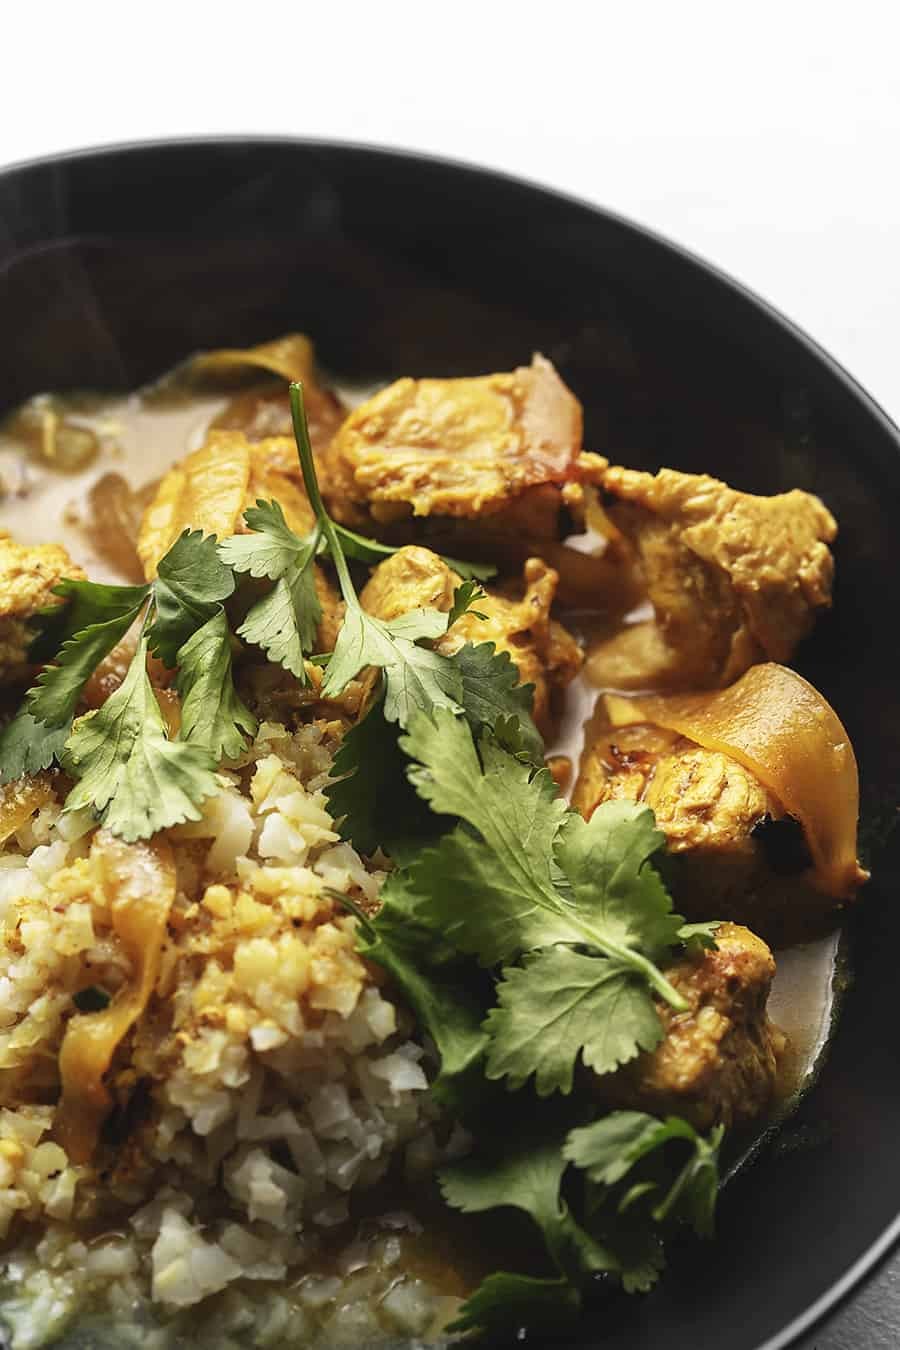 Indian curry chicken with cilantro in a black bowl